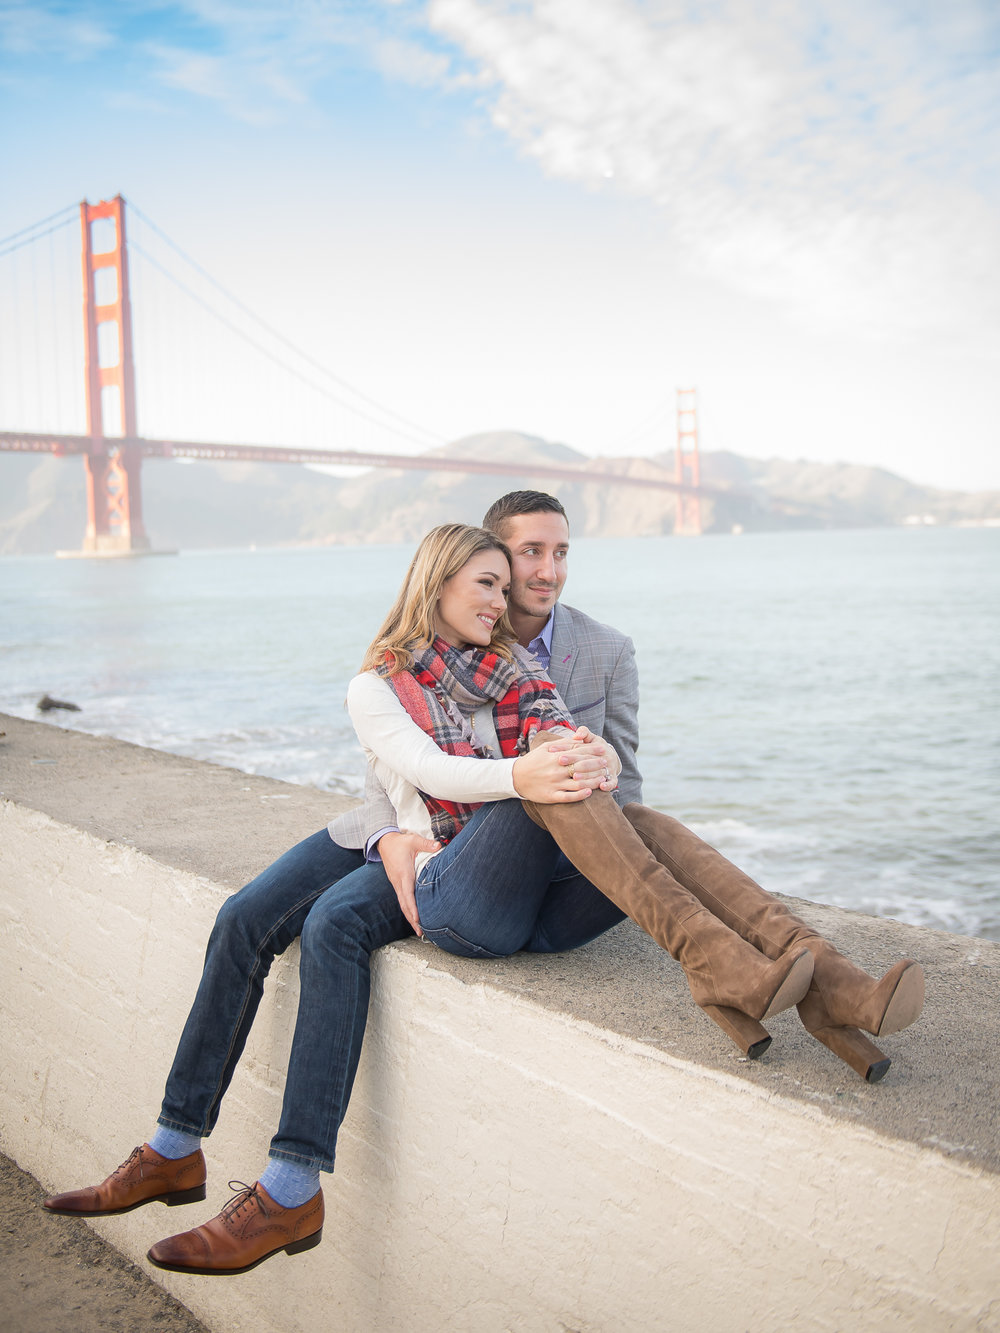 Katie+Nick_engagament_spp-5.jpg